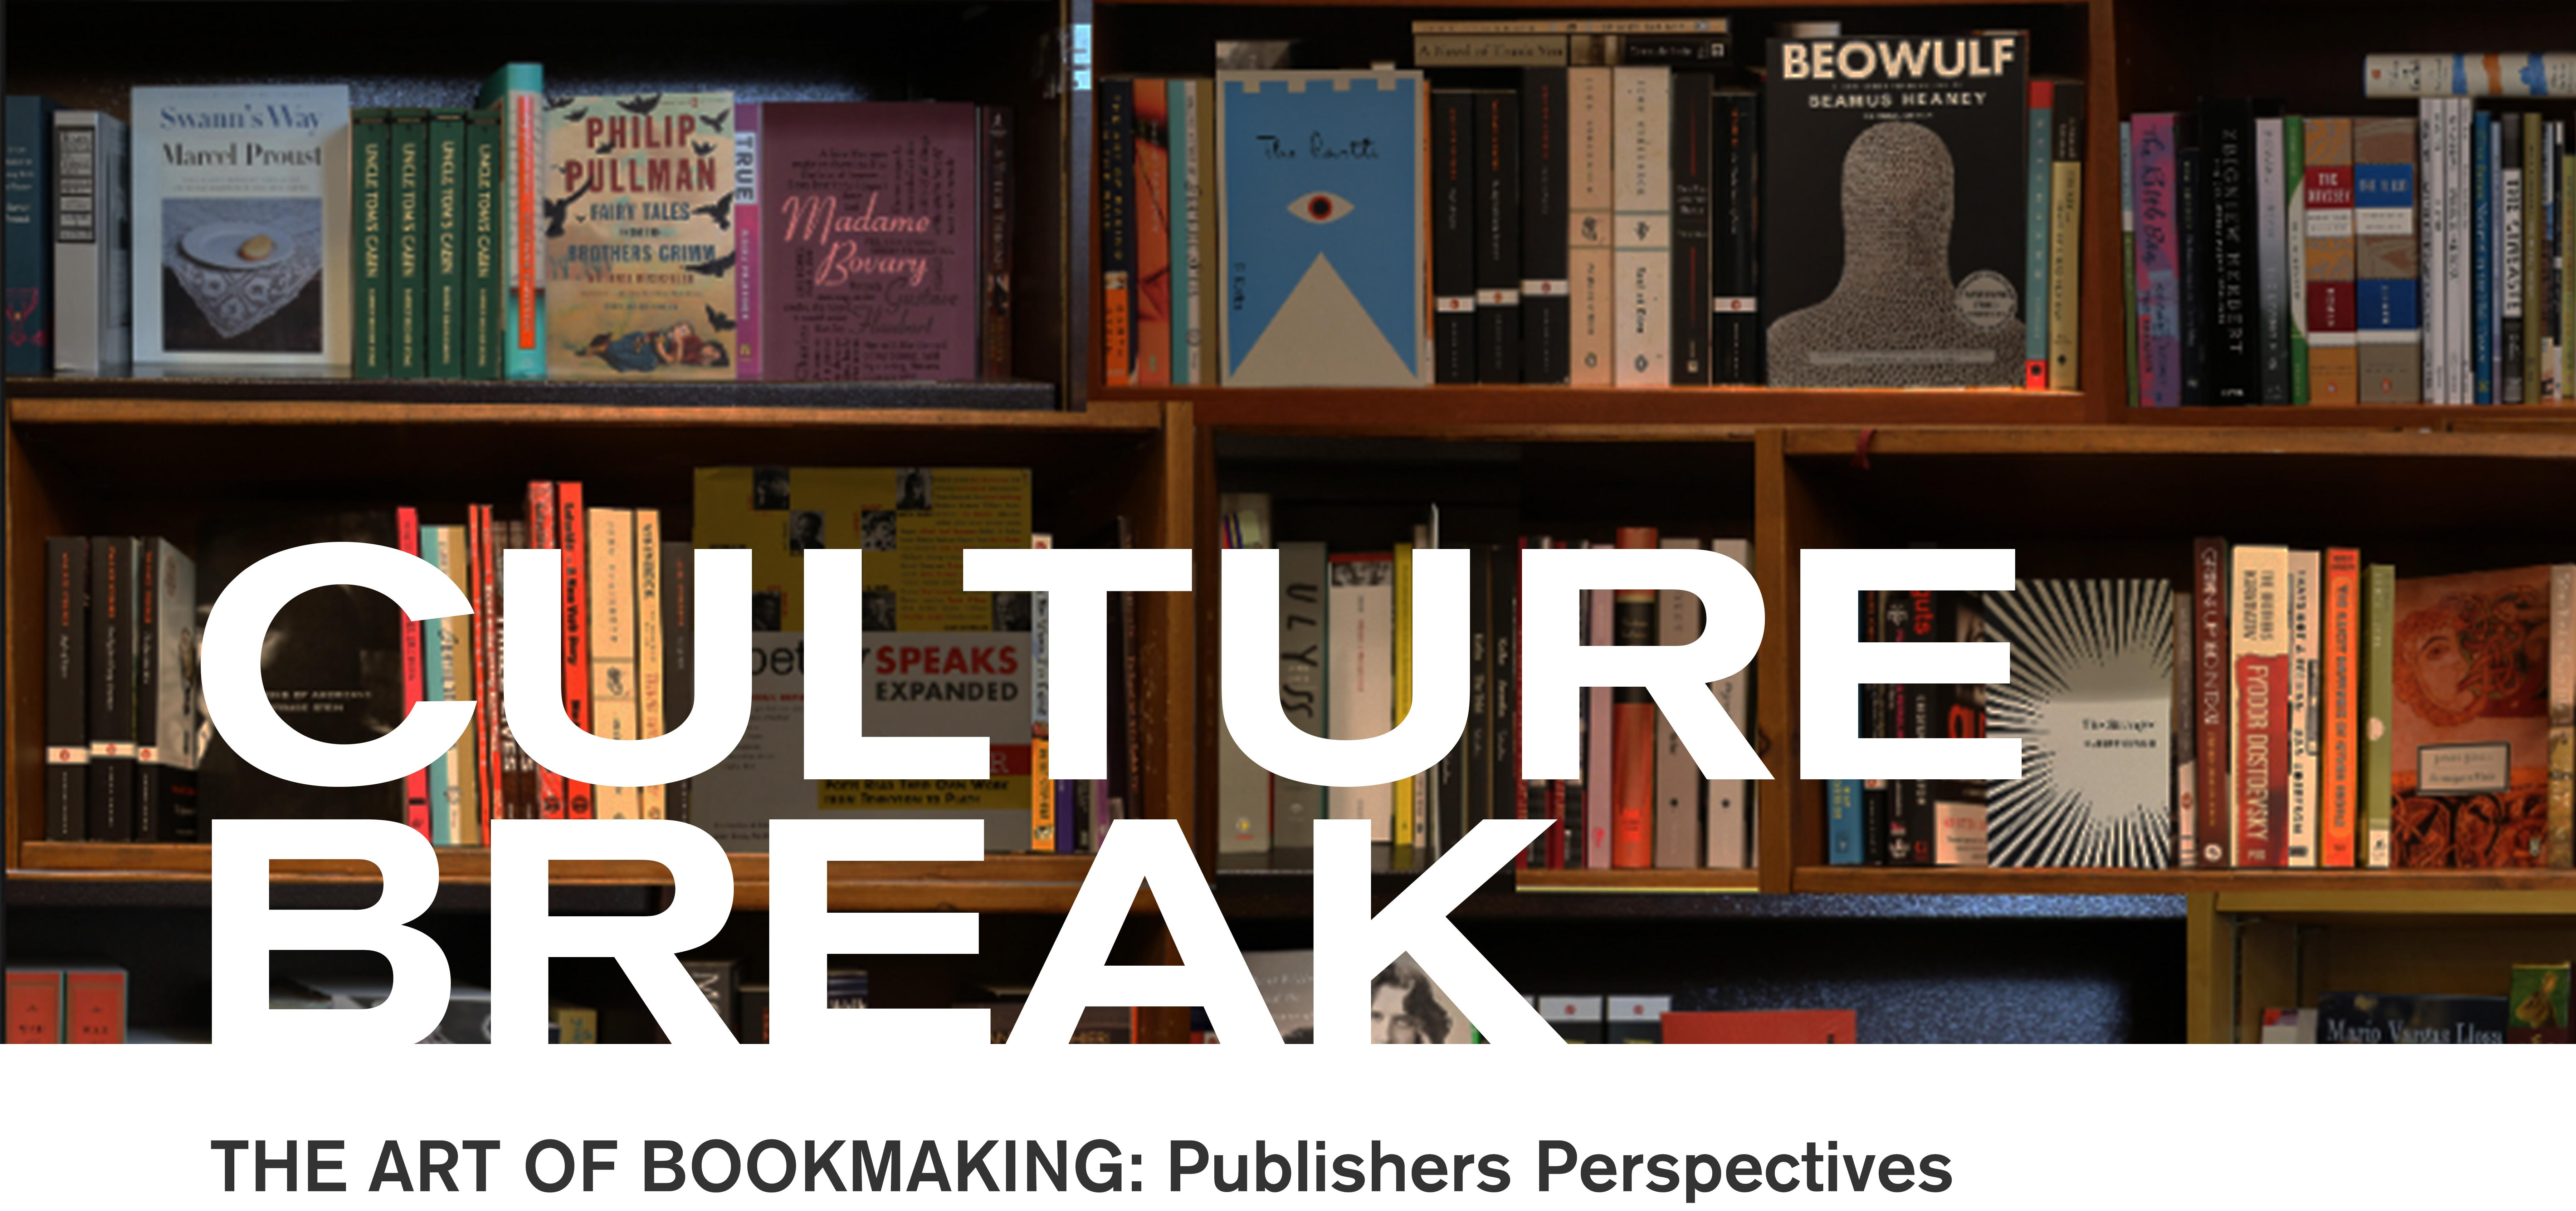 The Art of Bookmaking: Publishers Perspectives